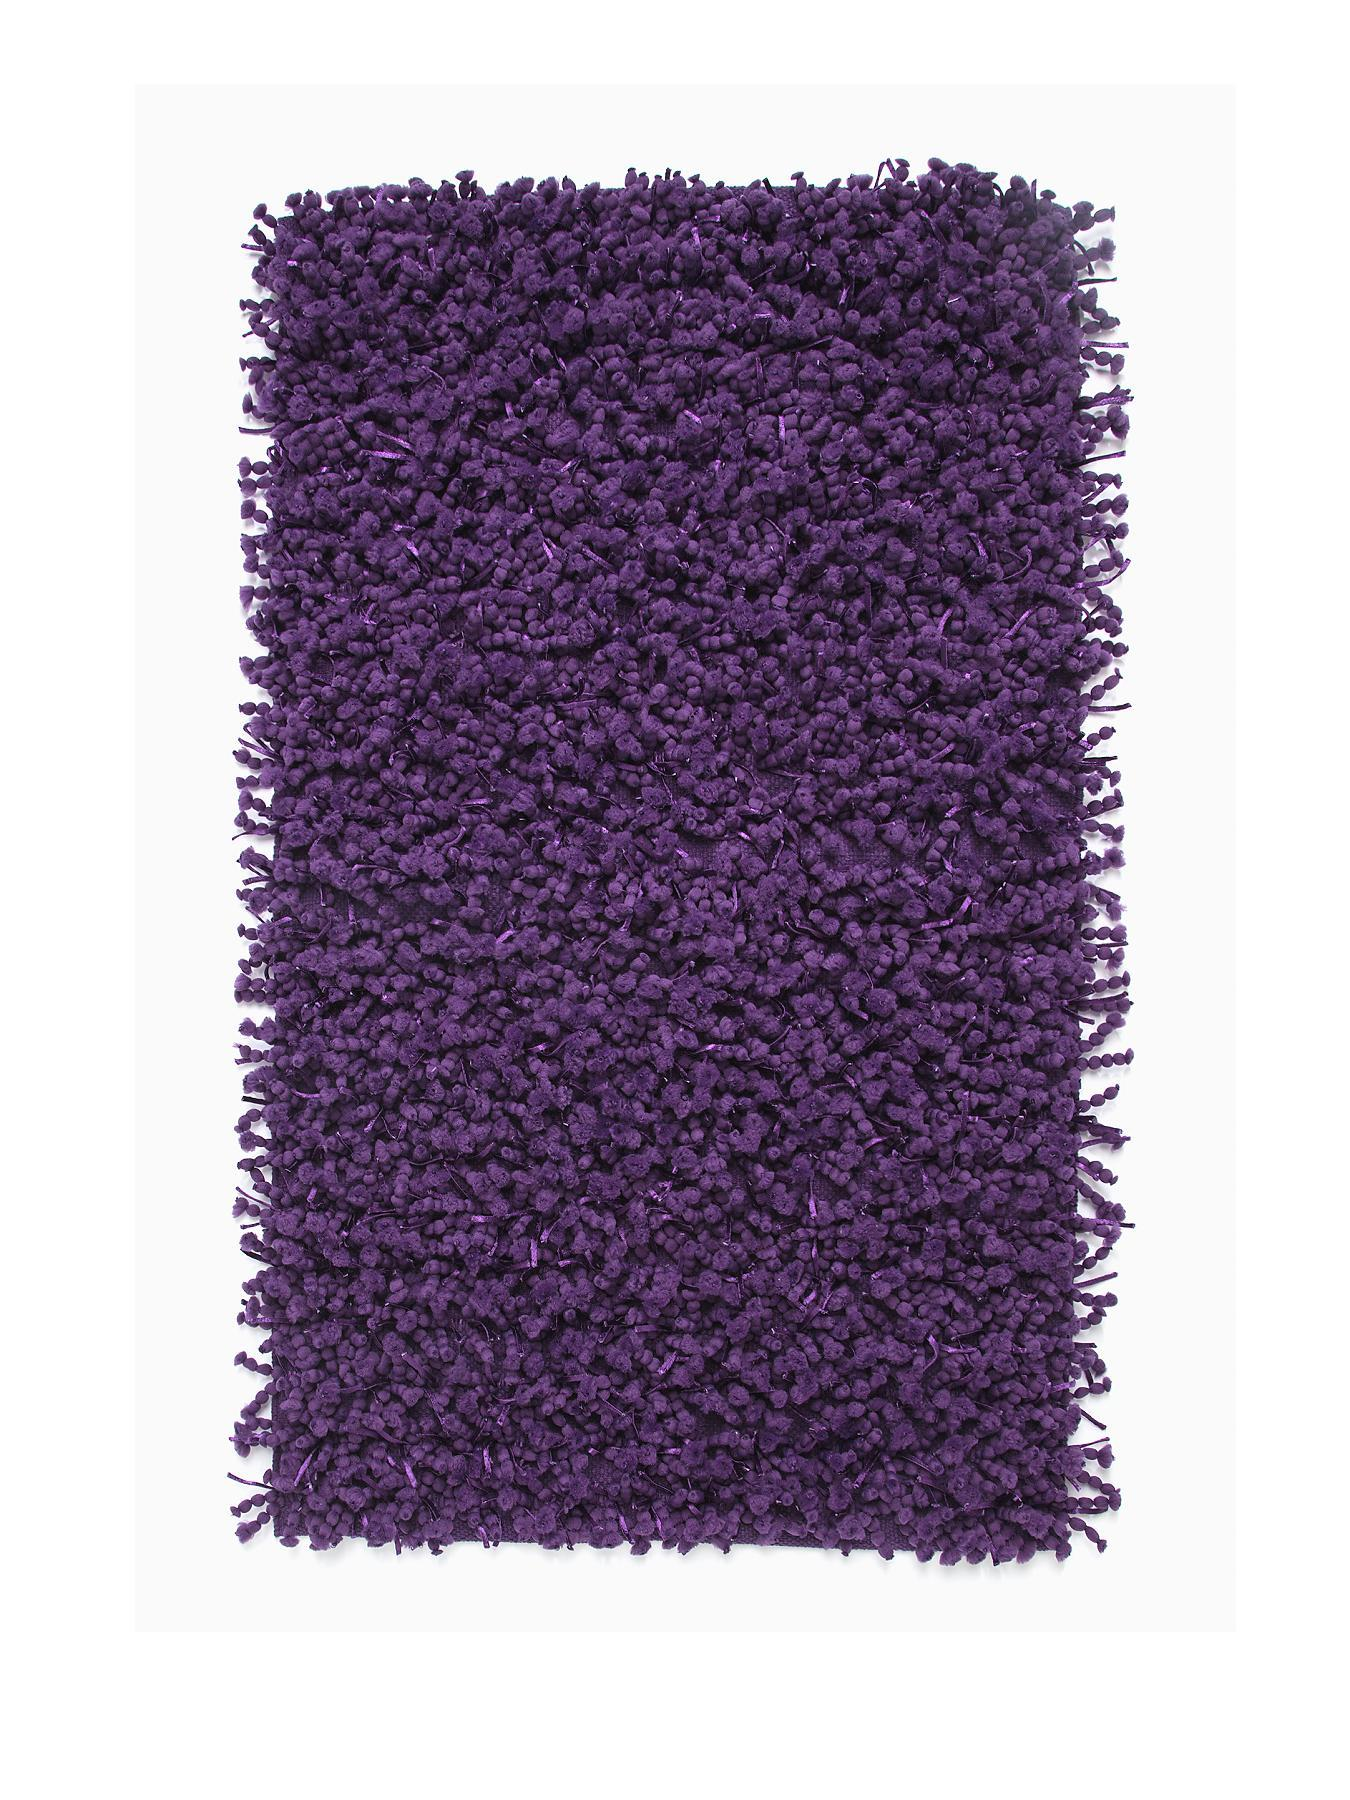 Bobble Bathmat - Purple, Purple,White,Black,Teal